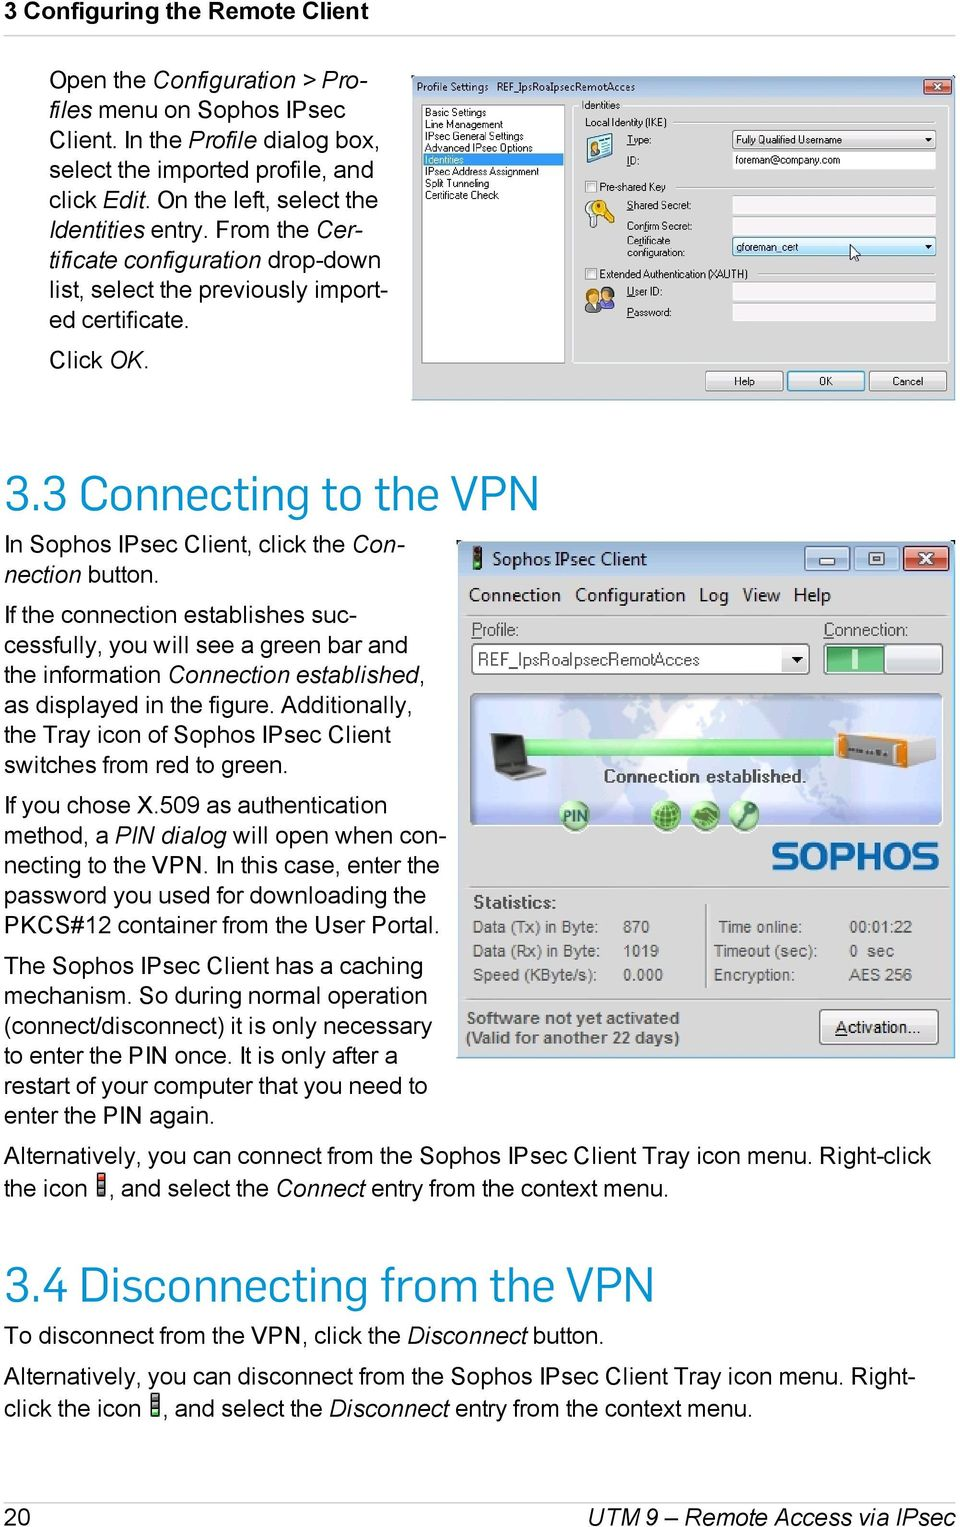 Sophos UTM  Remote Access via IPsec  Configuring UTM and